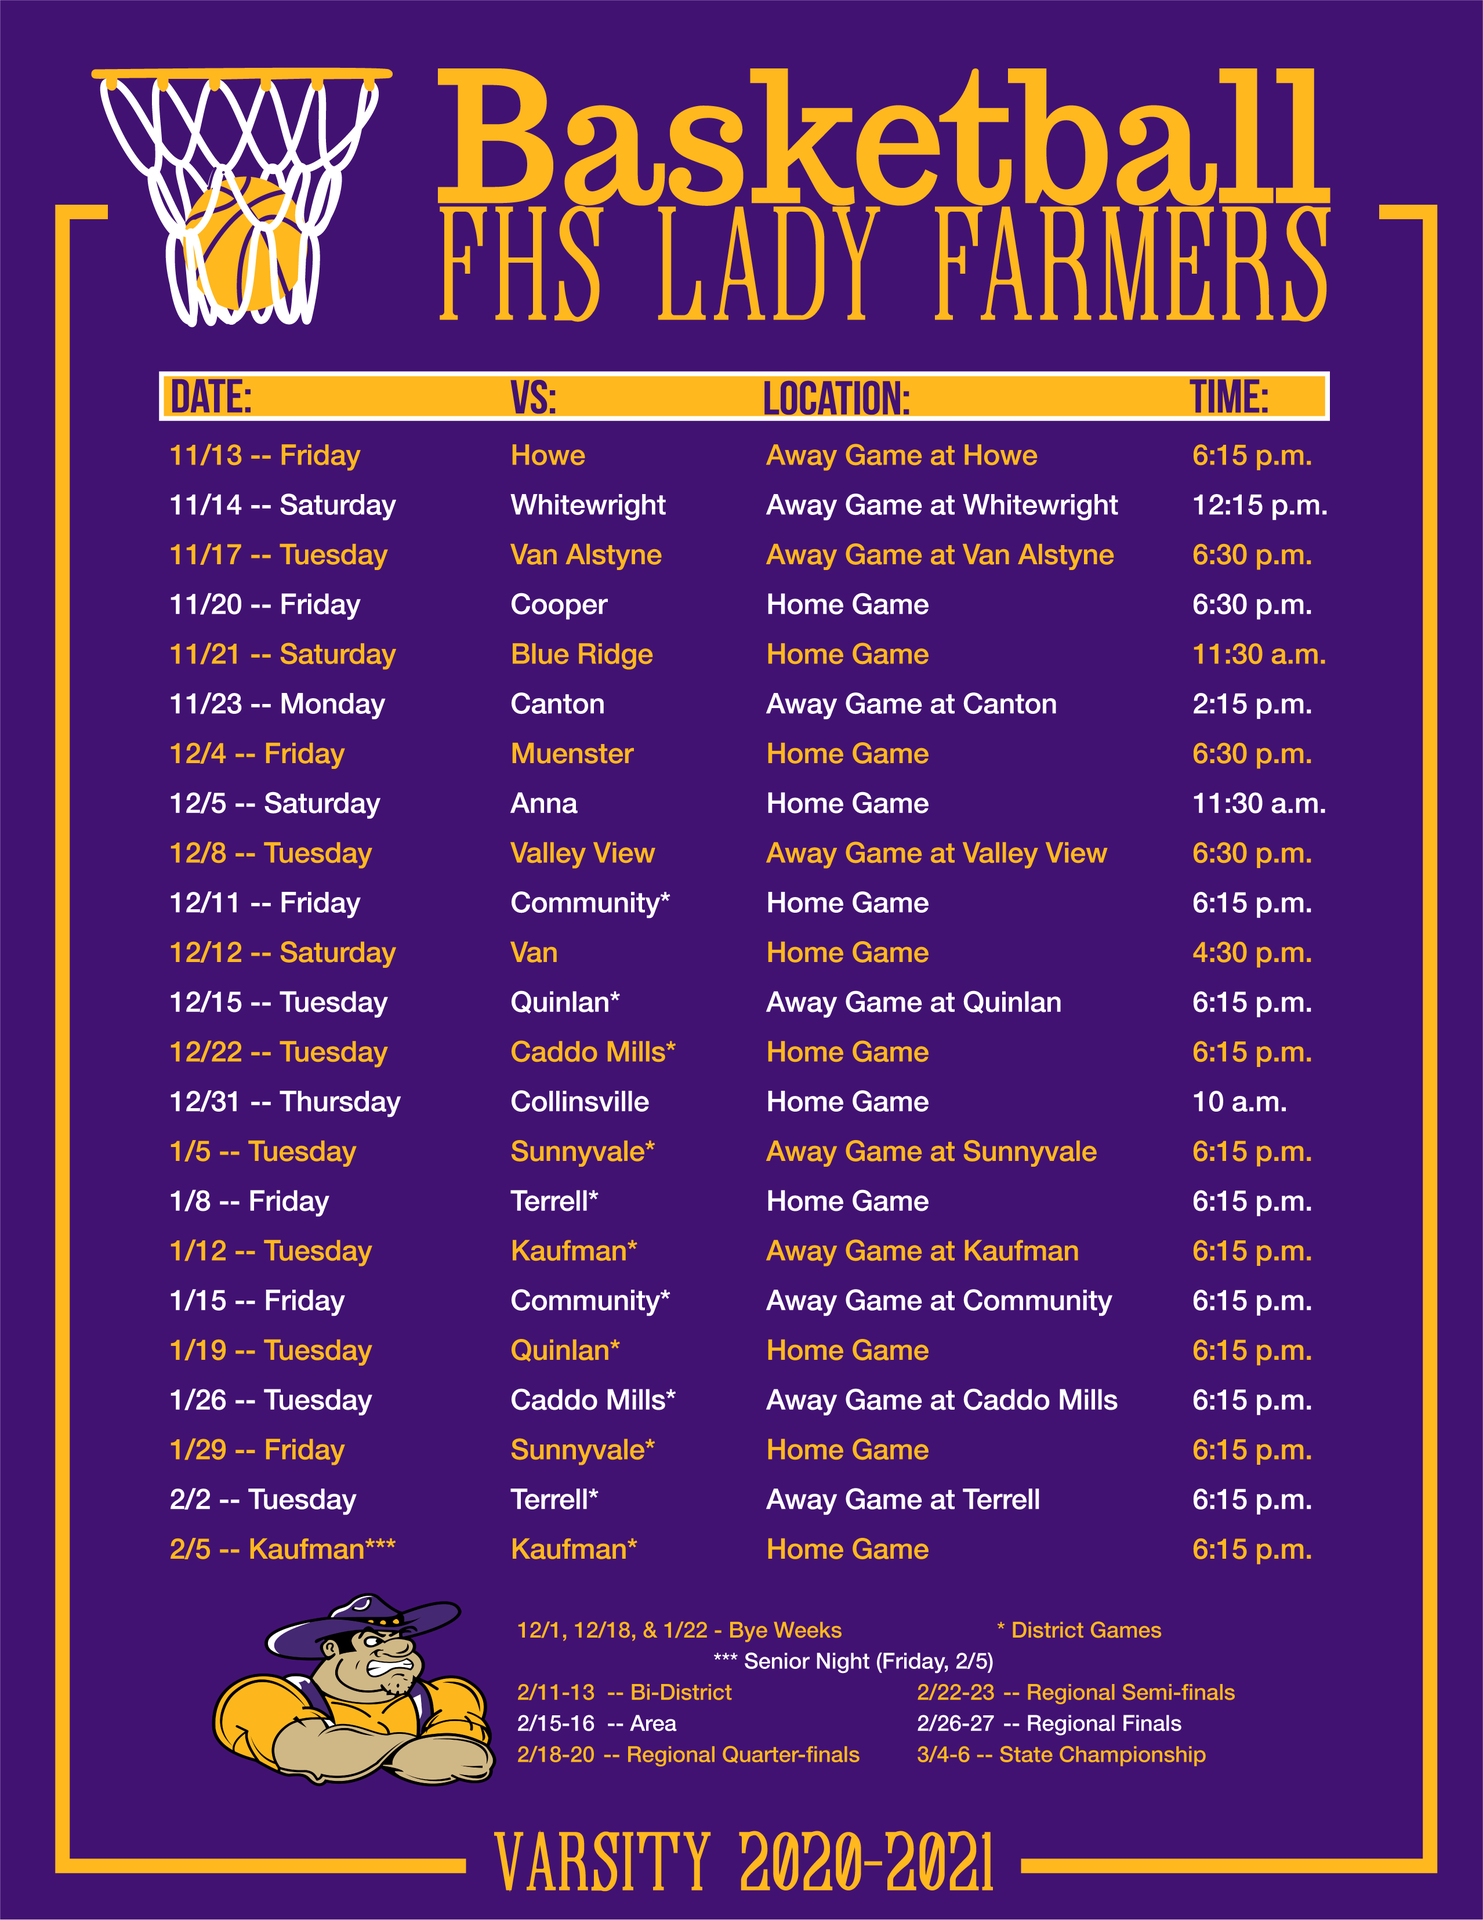 Lady Farmers Varsity Basketball Schedule